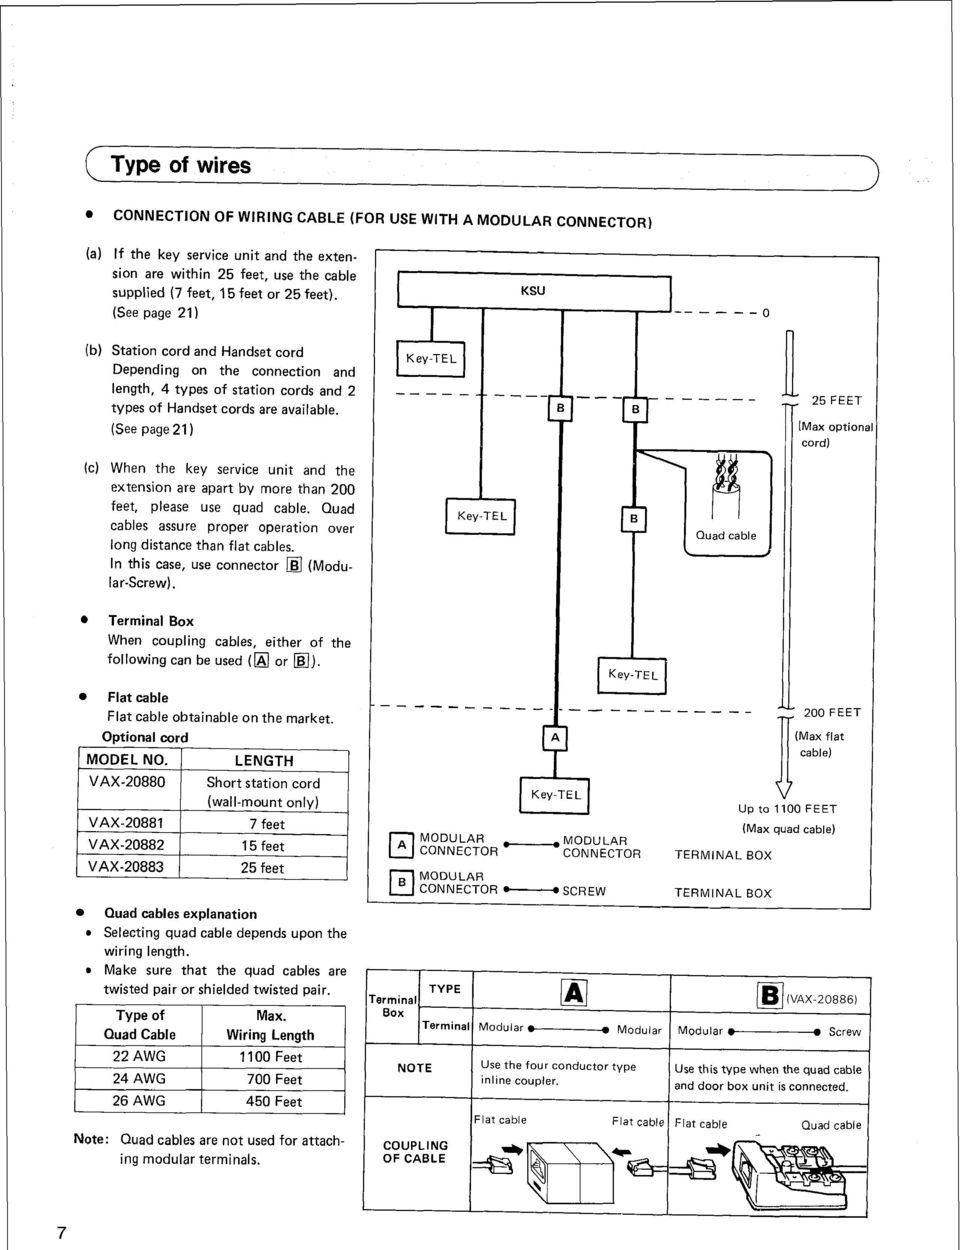 (See page 21) ----_ -- KSU - --A---o n 25 FEET [Max option: cord) ll (c) When the key service unit and the extension are apart by more than 200 feet, please use quad cable.